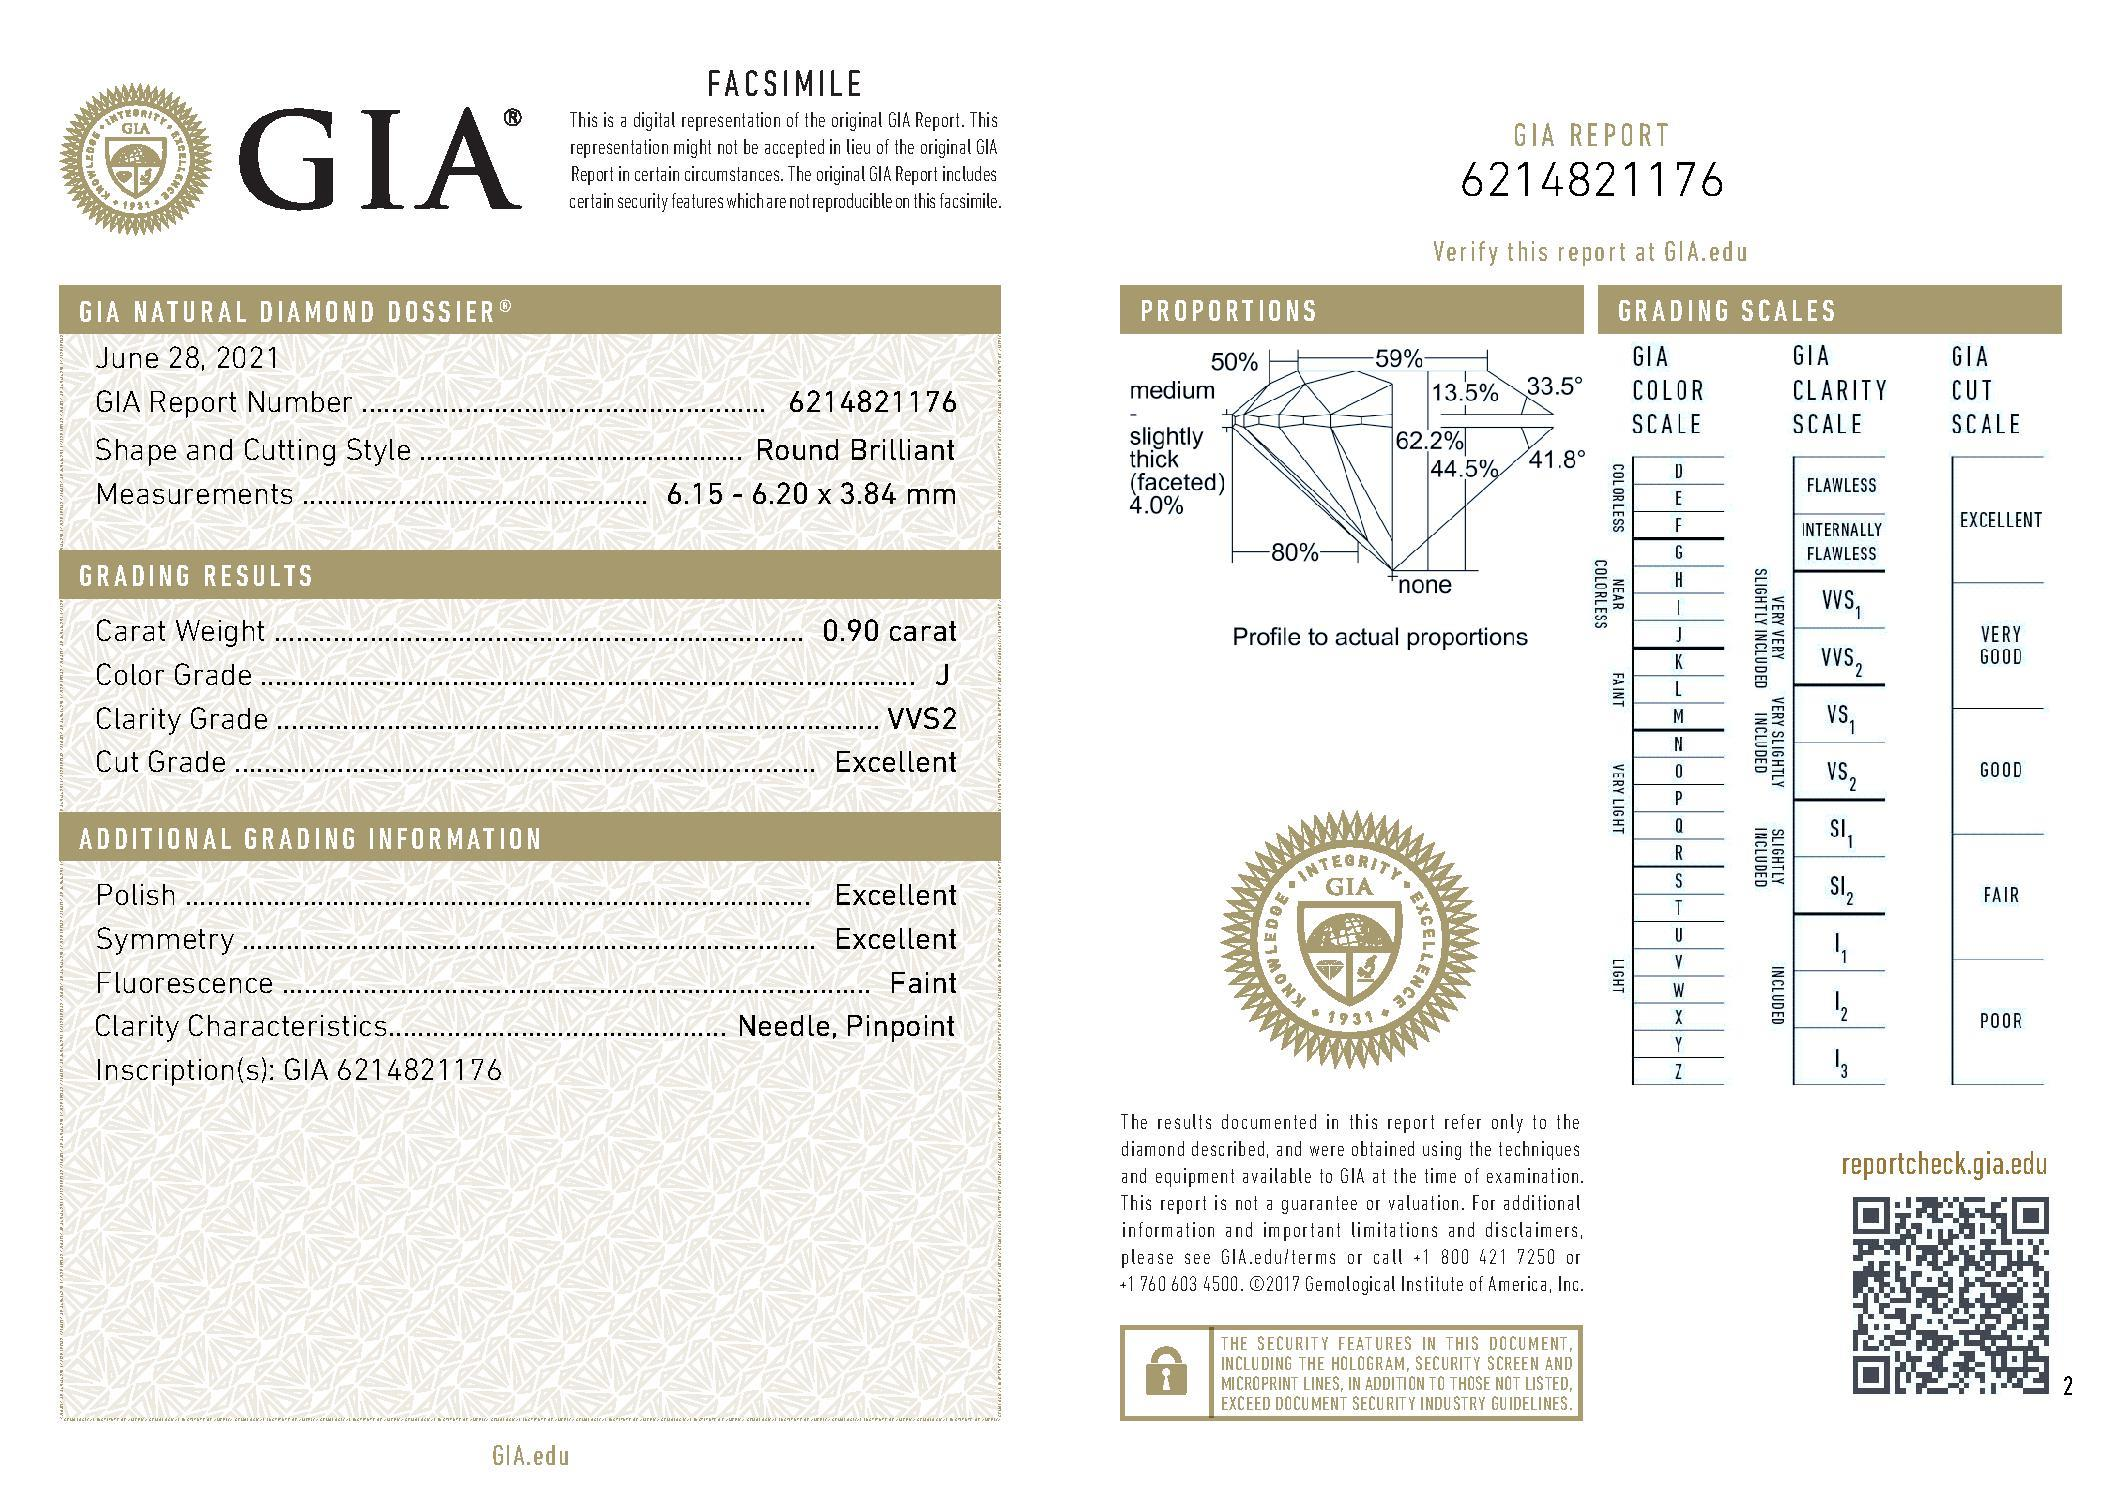 This is a 0.90 carat round shape, J color, VVS2 clarity natural diamond accompanied by a GIA grading report.